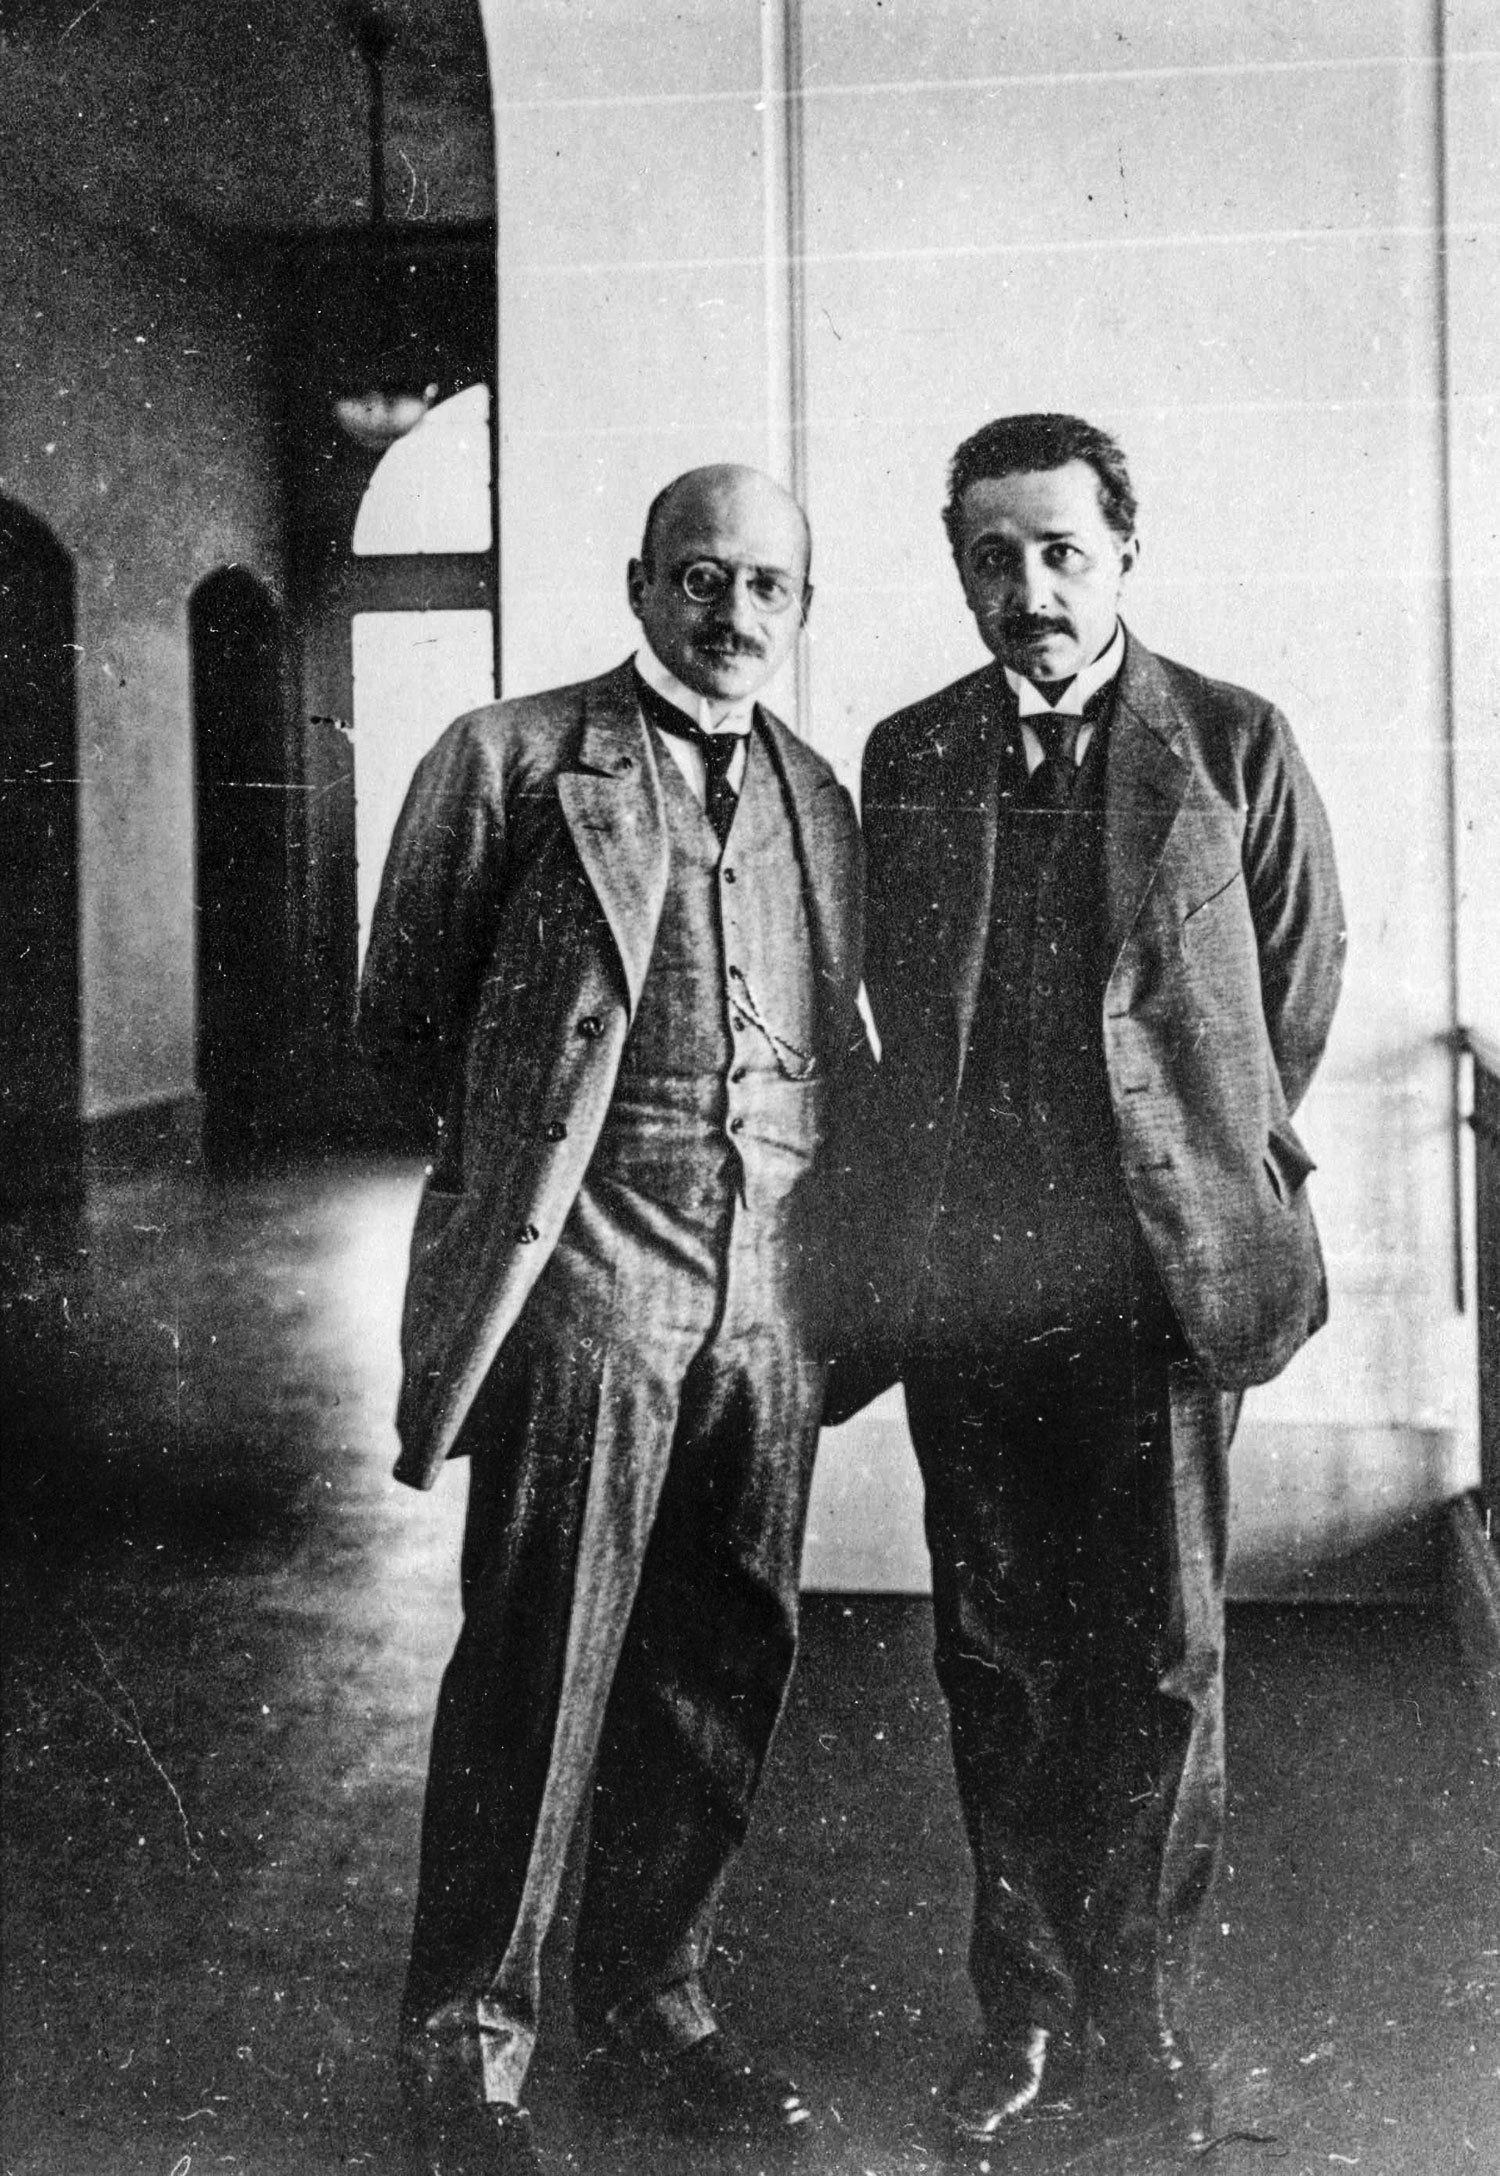 a biography of fritz haber a brilliant scientist Biography of fritz haber  owe their existence to the discoveries made by one brilliant german  better than fritz haber the debate over science's capacity .